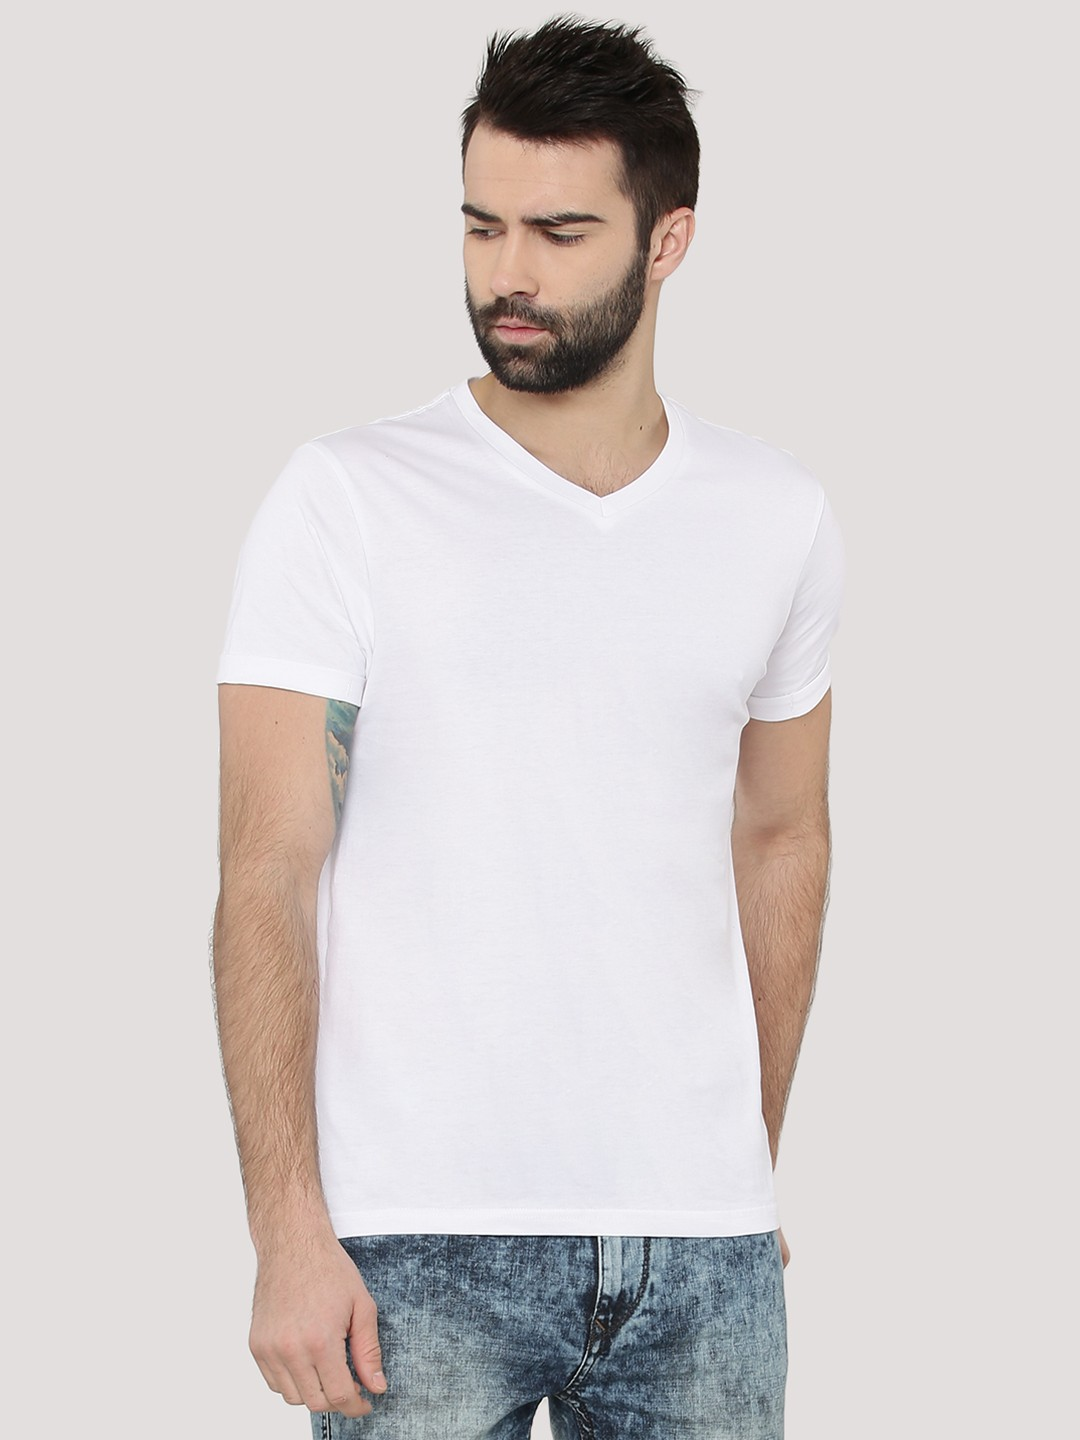 distrib-wq9rfuqq.tk: Buy Men's T-Shirts online at low prices in India at distrib-wq9rfuqq.tk Shop T-Shirts for men from popular brands such as 1ly Cargos, Zovi, Giftsmate and more for best prices at distrib-wq9rfuqq.tk Amazon Try Prime WYO Men's Solid Plain Casual Slim Fit Half Sleeve V-Neck T-Shirt.